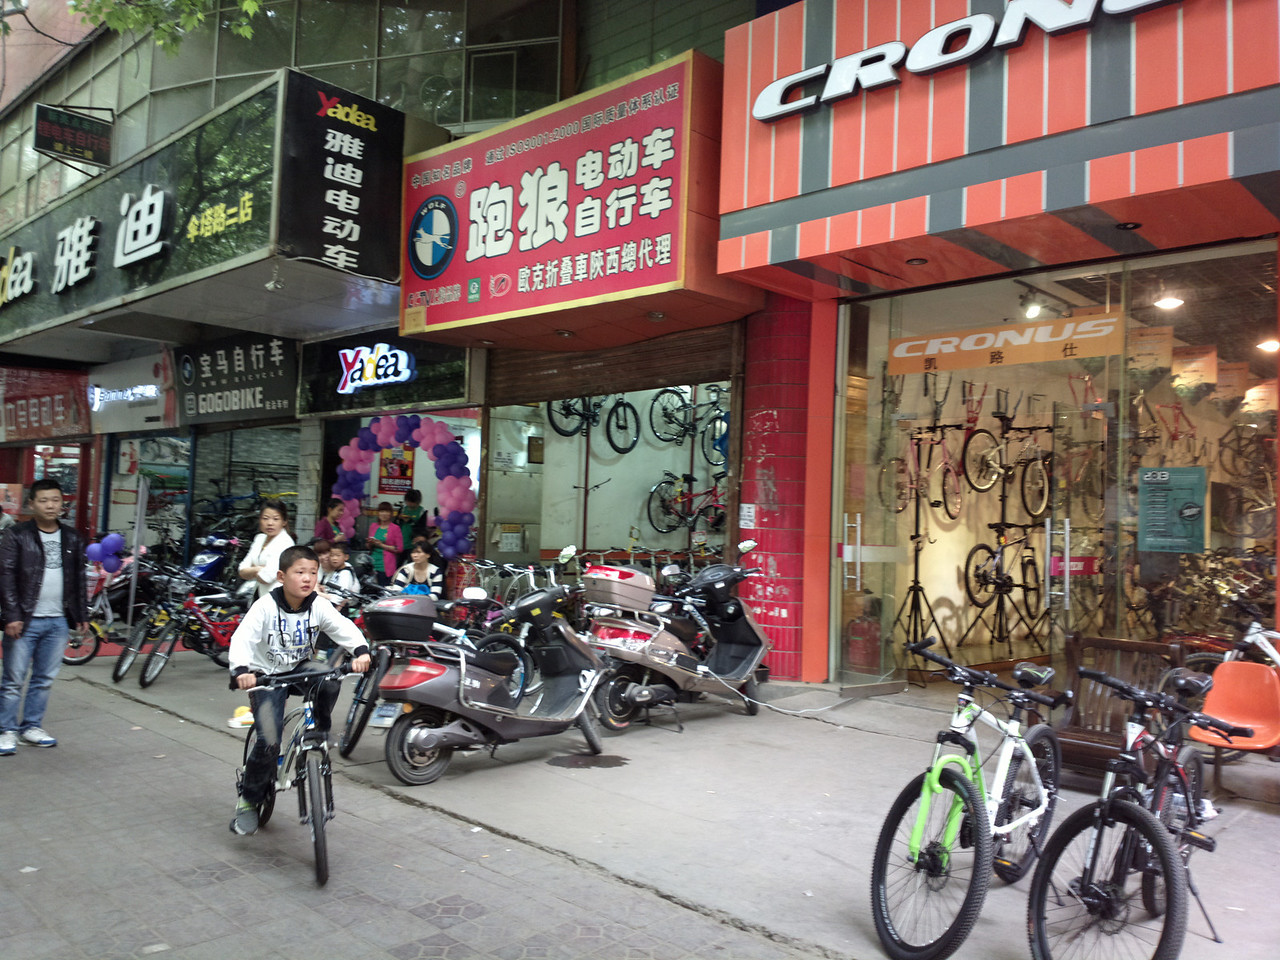 20130501_1415_0069 Bicycle shop district SanTa Road (伞塔路)